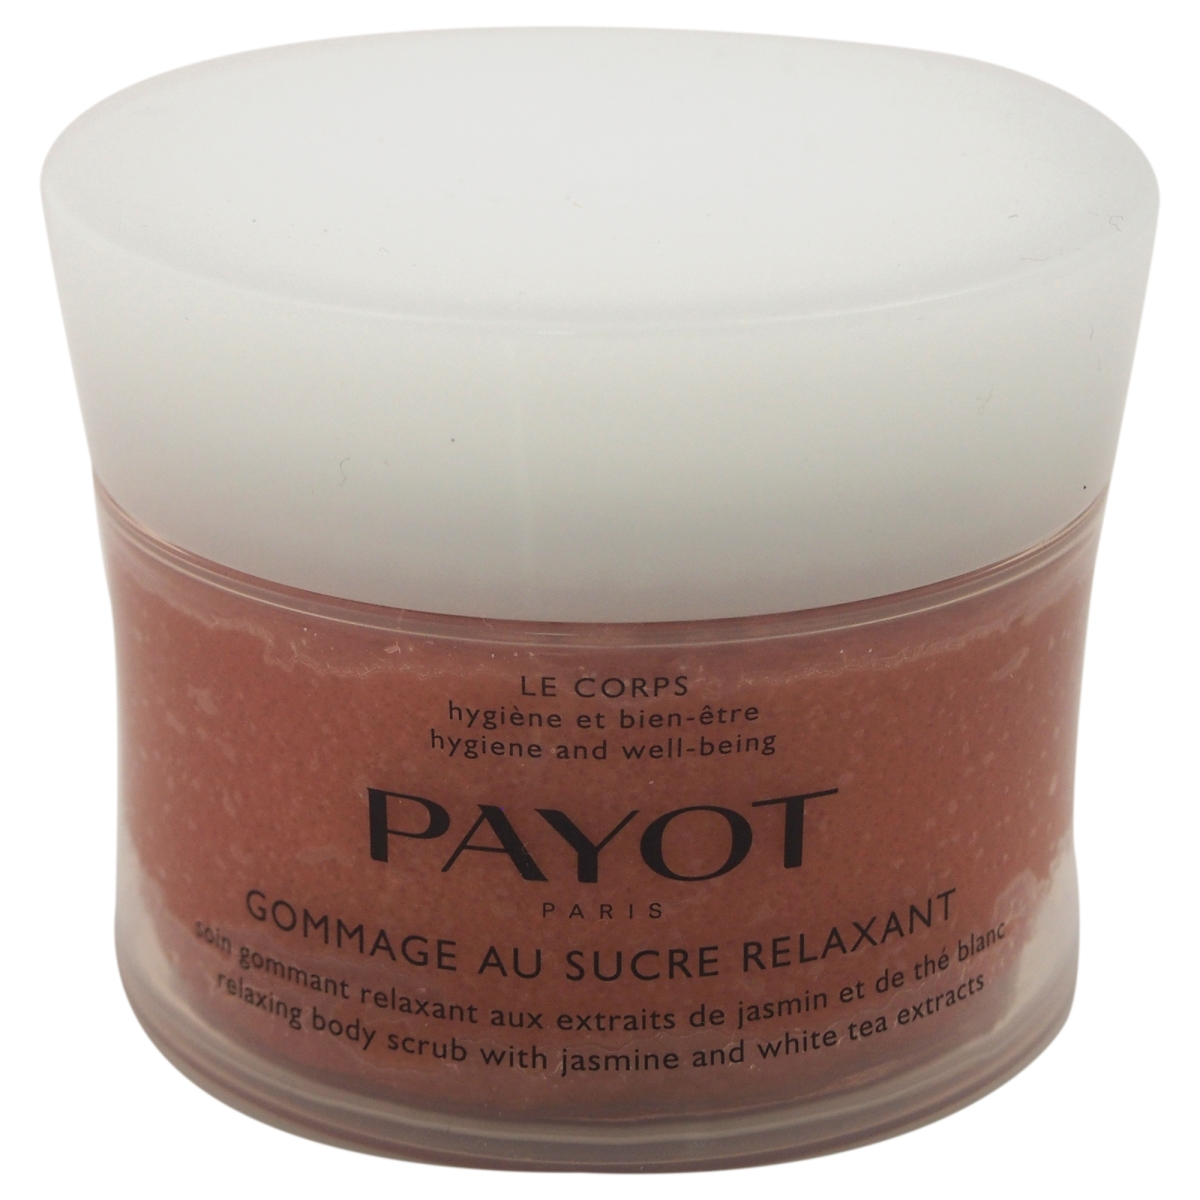 Payot W-BB-3050 Gommage Au Sucre Relaxant Body Scrub for Women - 6.7 oz